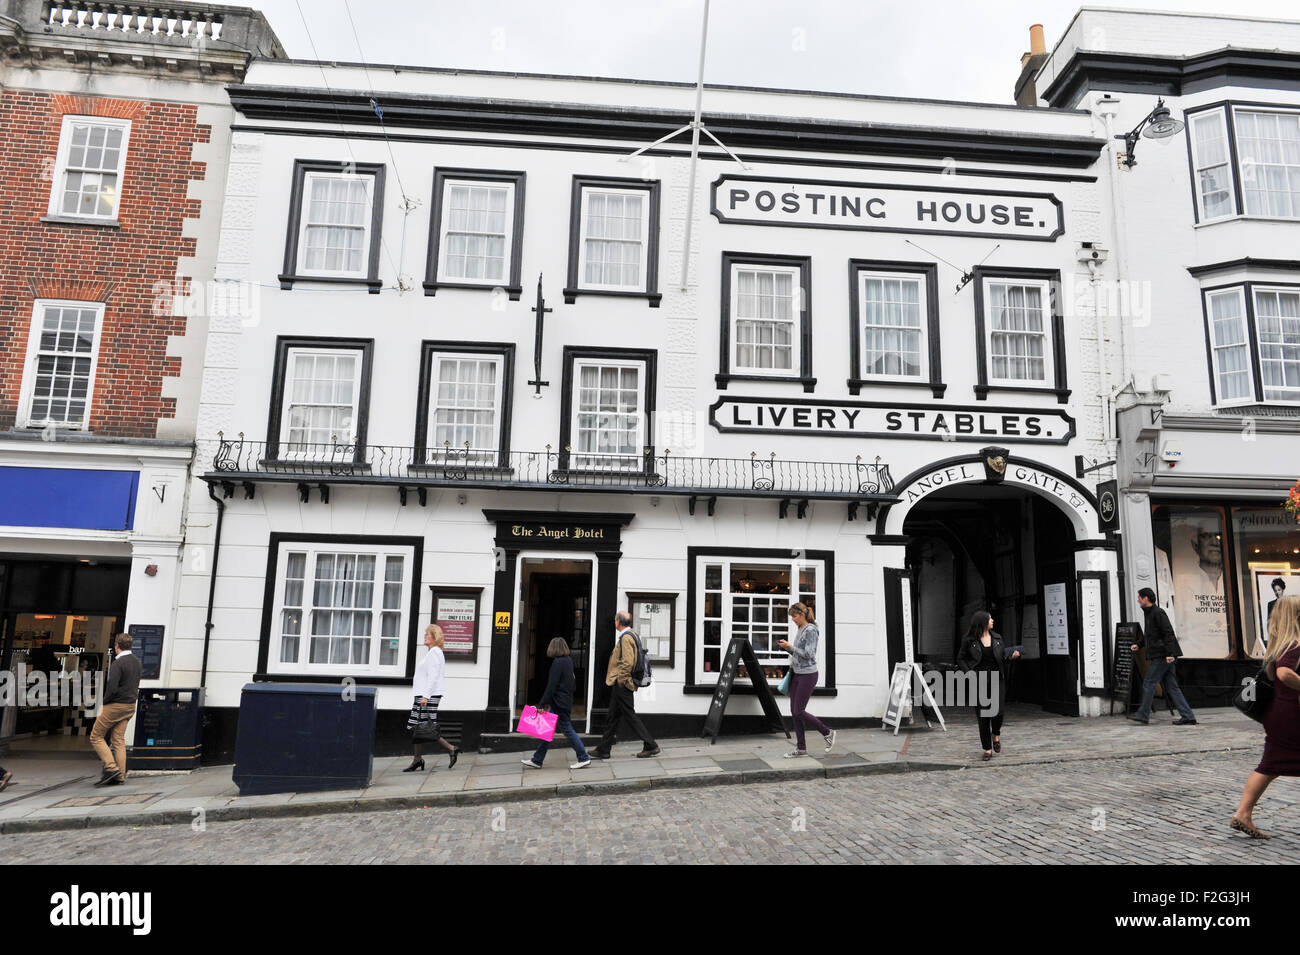 Guildford Surrey UK - The Old Posting House and Livery Stables at the Angel Hotel - Stock Image